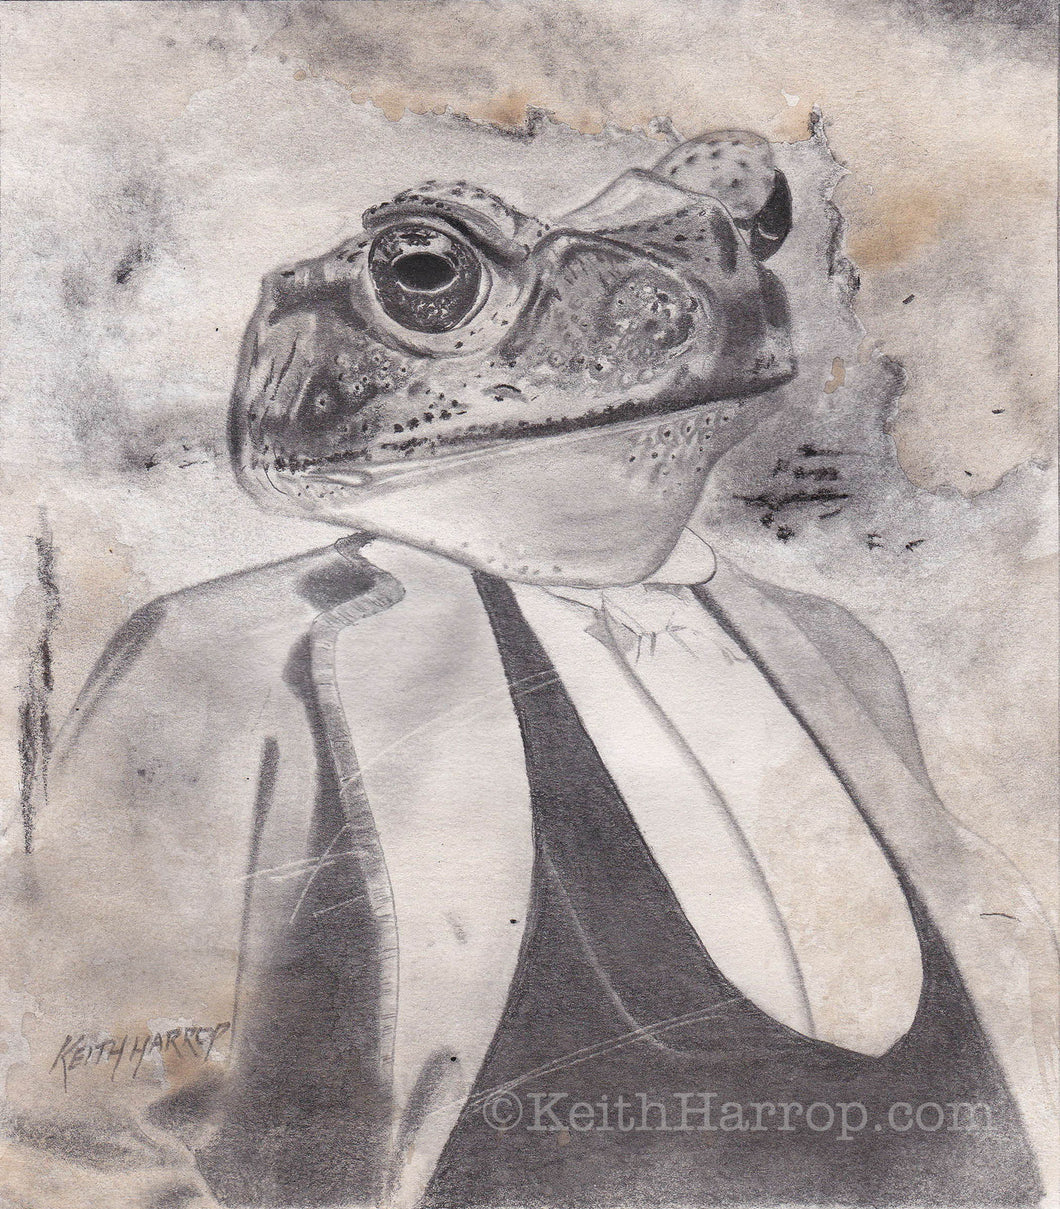 Animorphia #6 (Toad) - Pencil Illustration